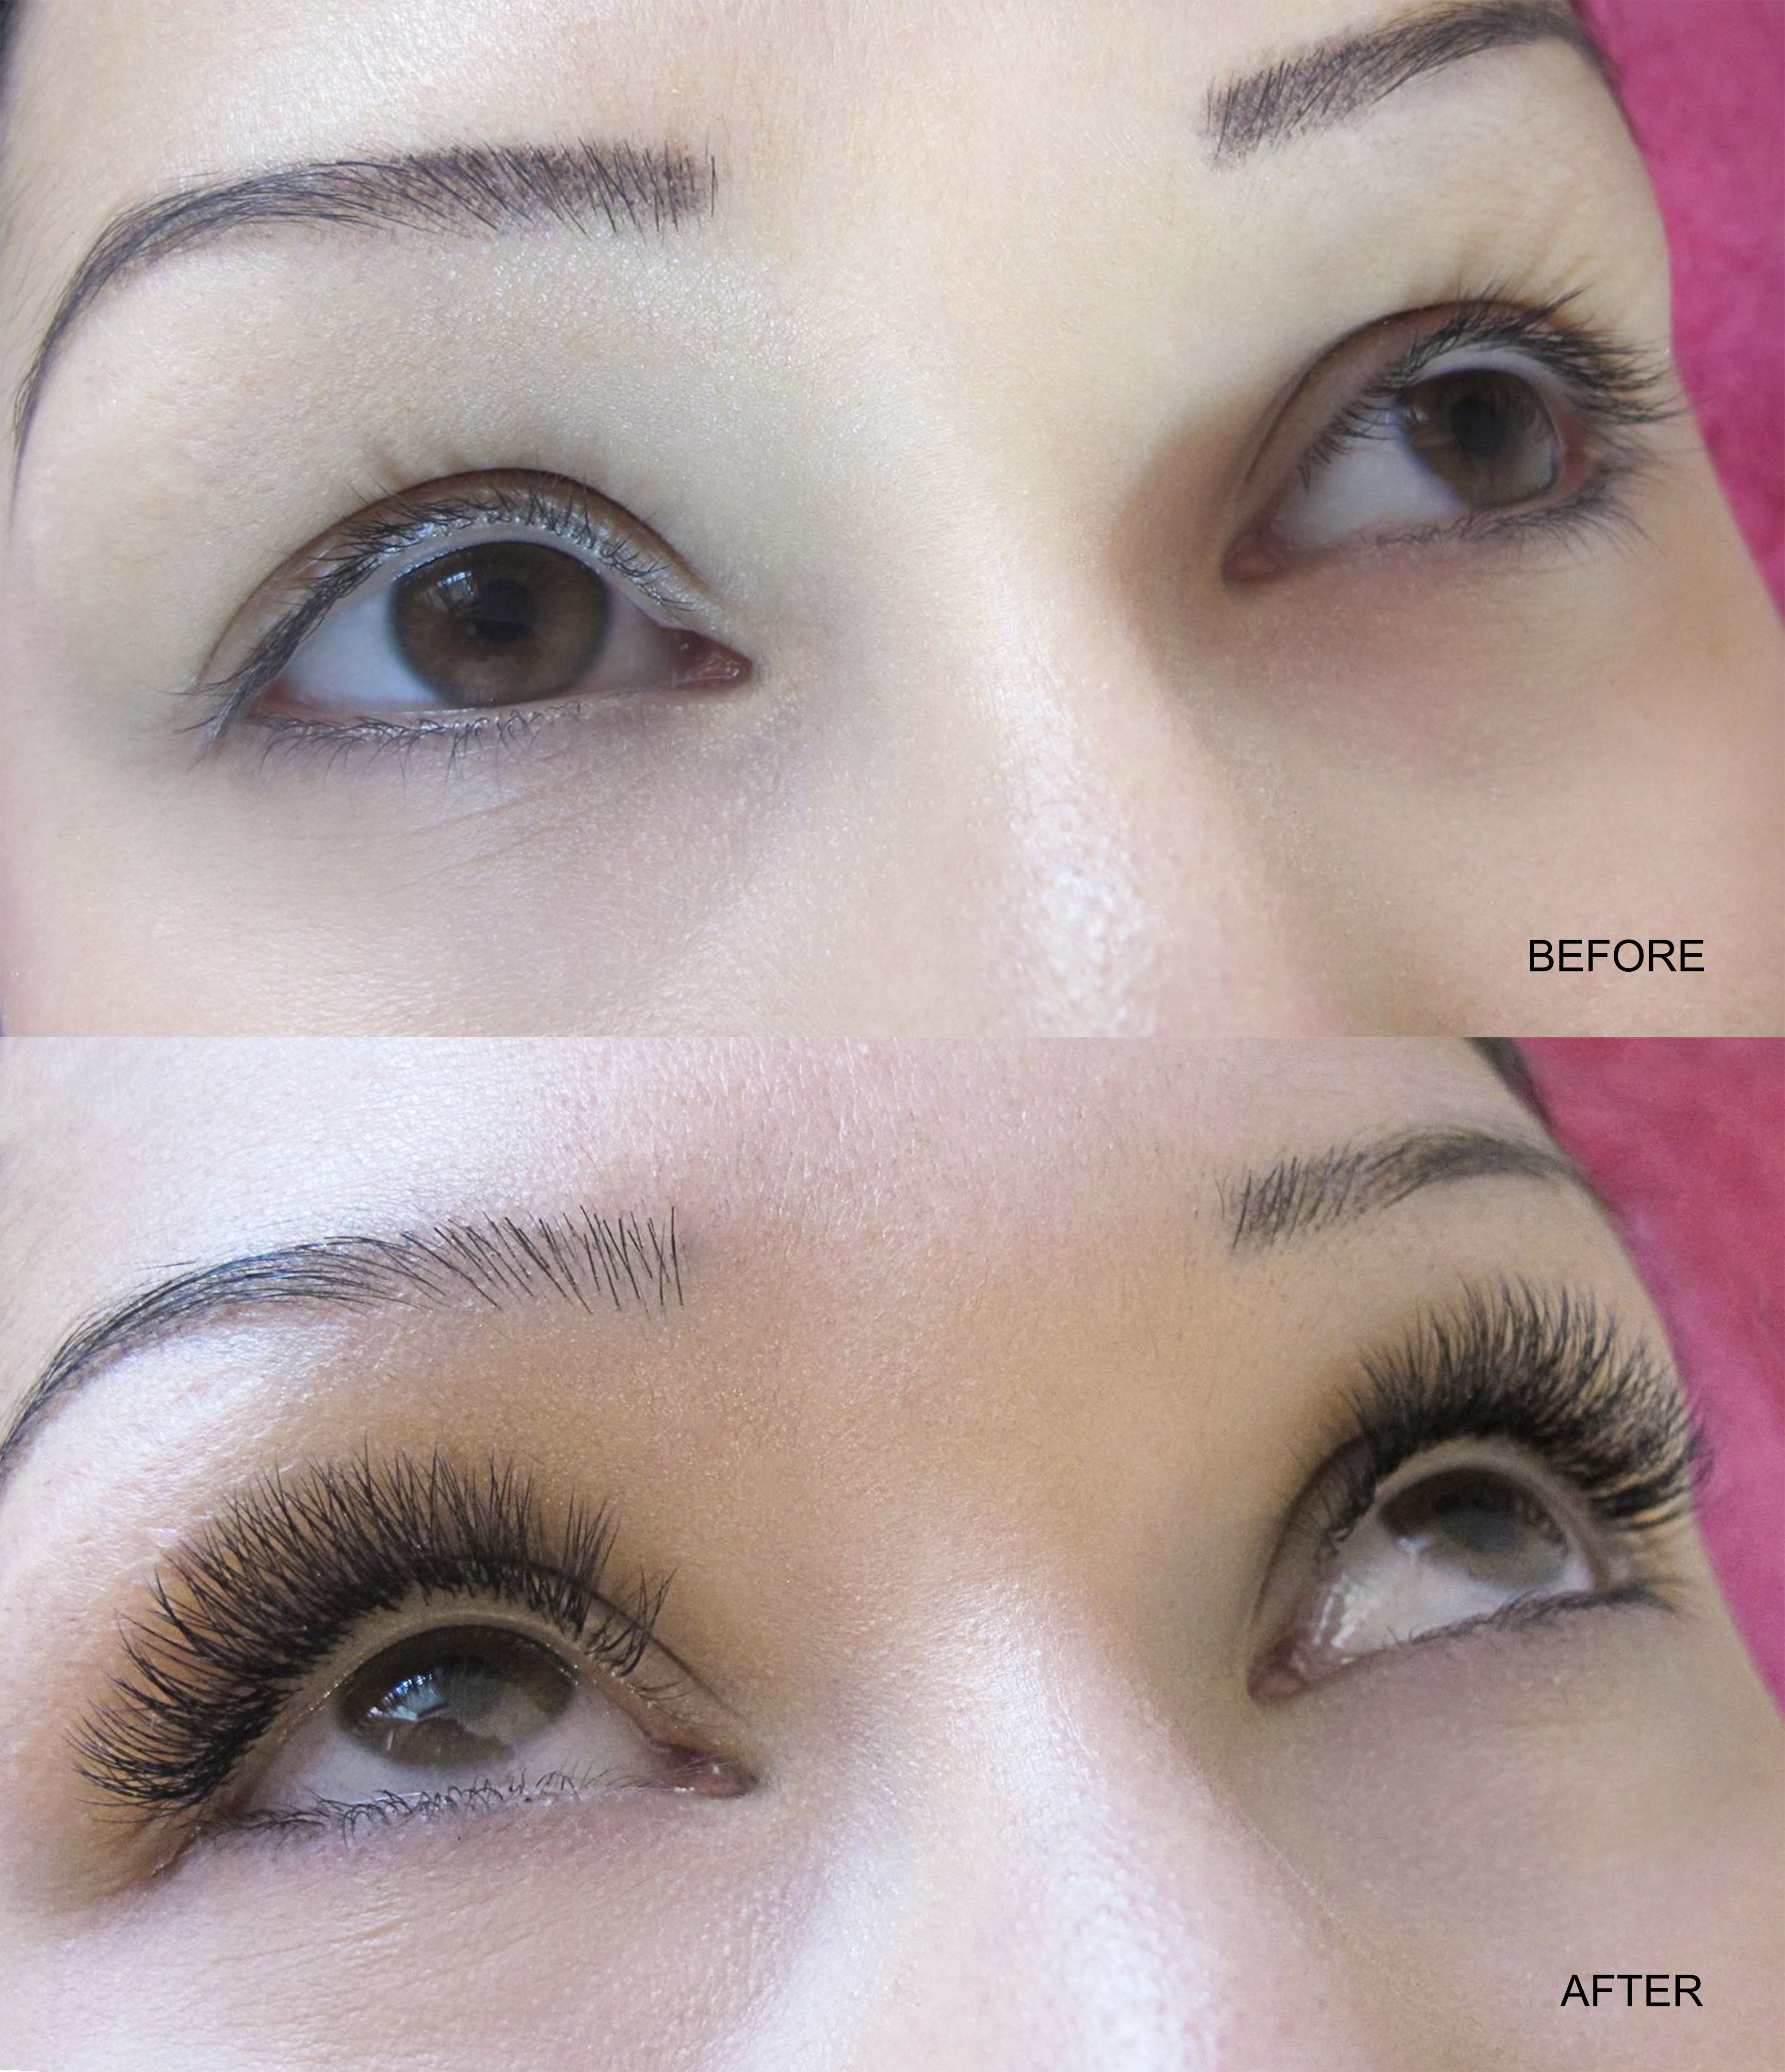 9b2a57fc105 Lashes created by The Lash & Brow Company | lashes | Eyelash ...